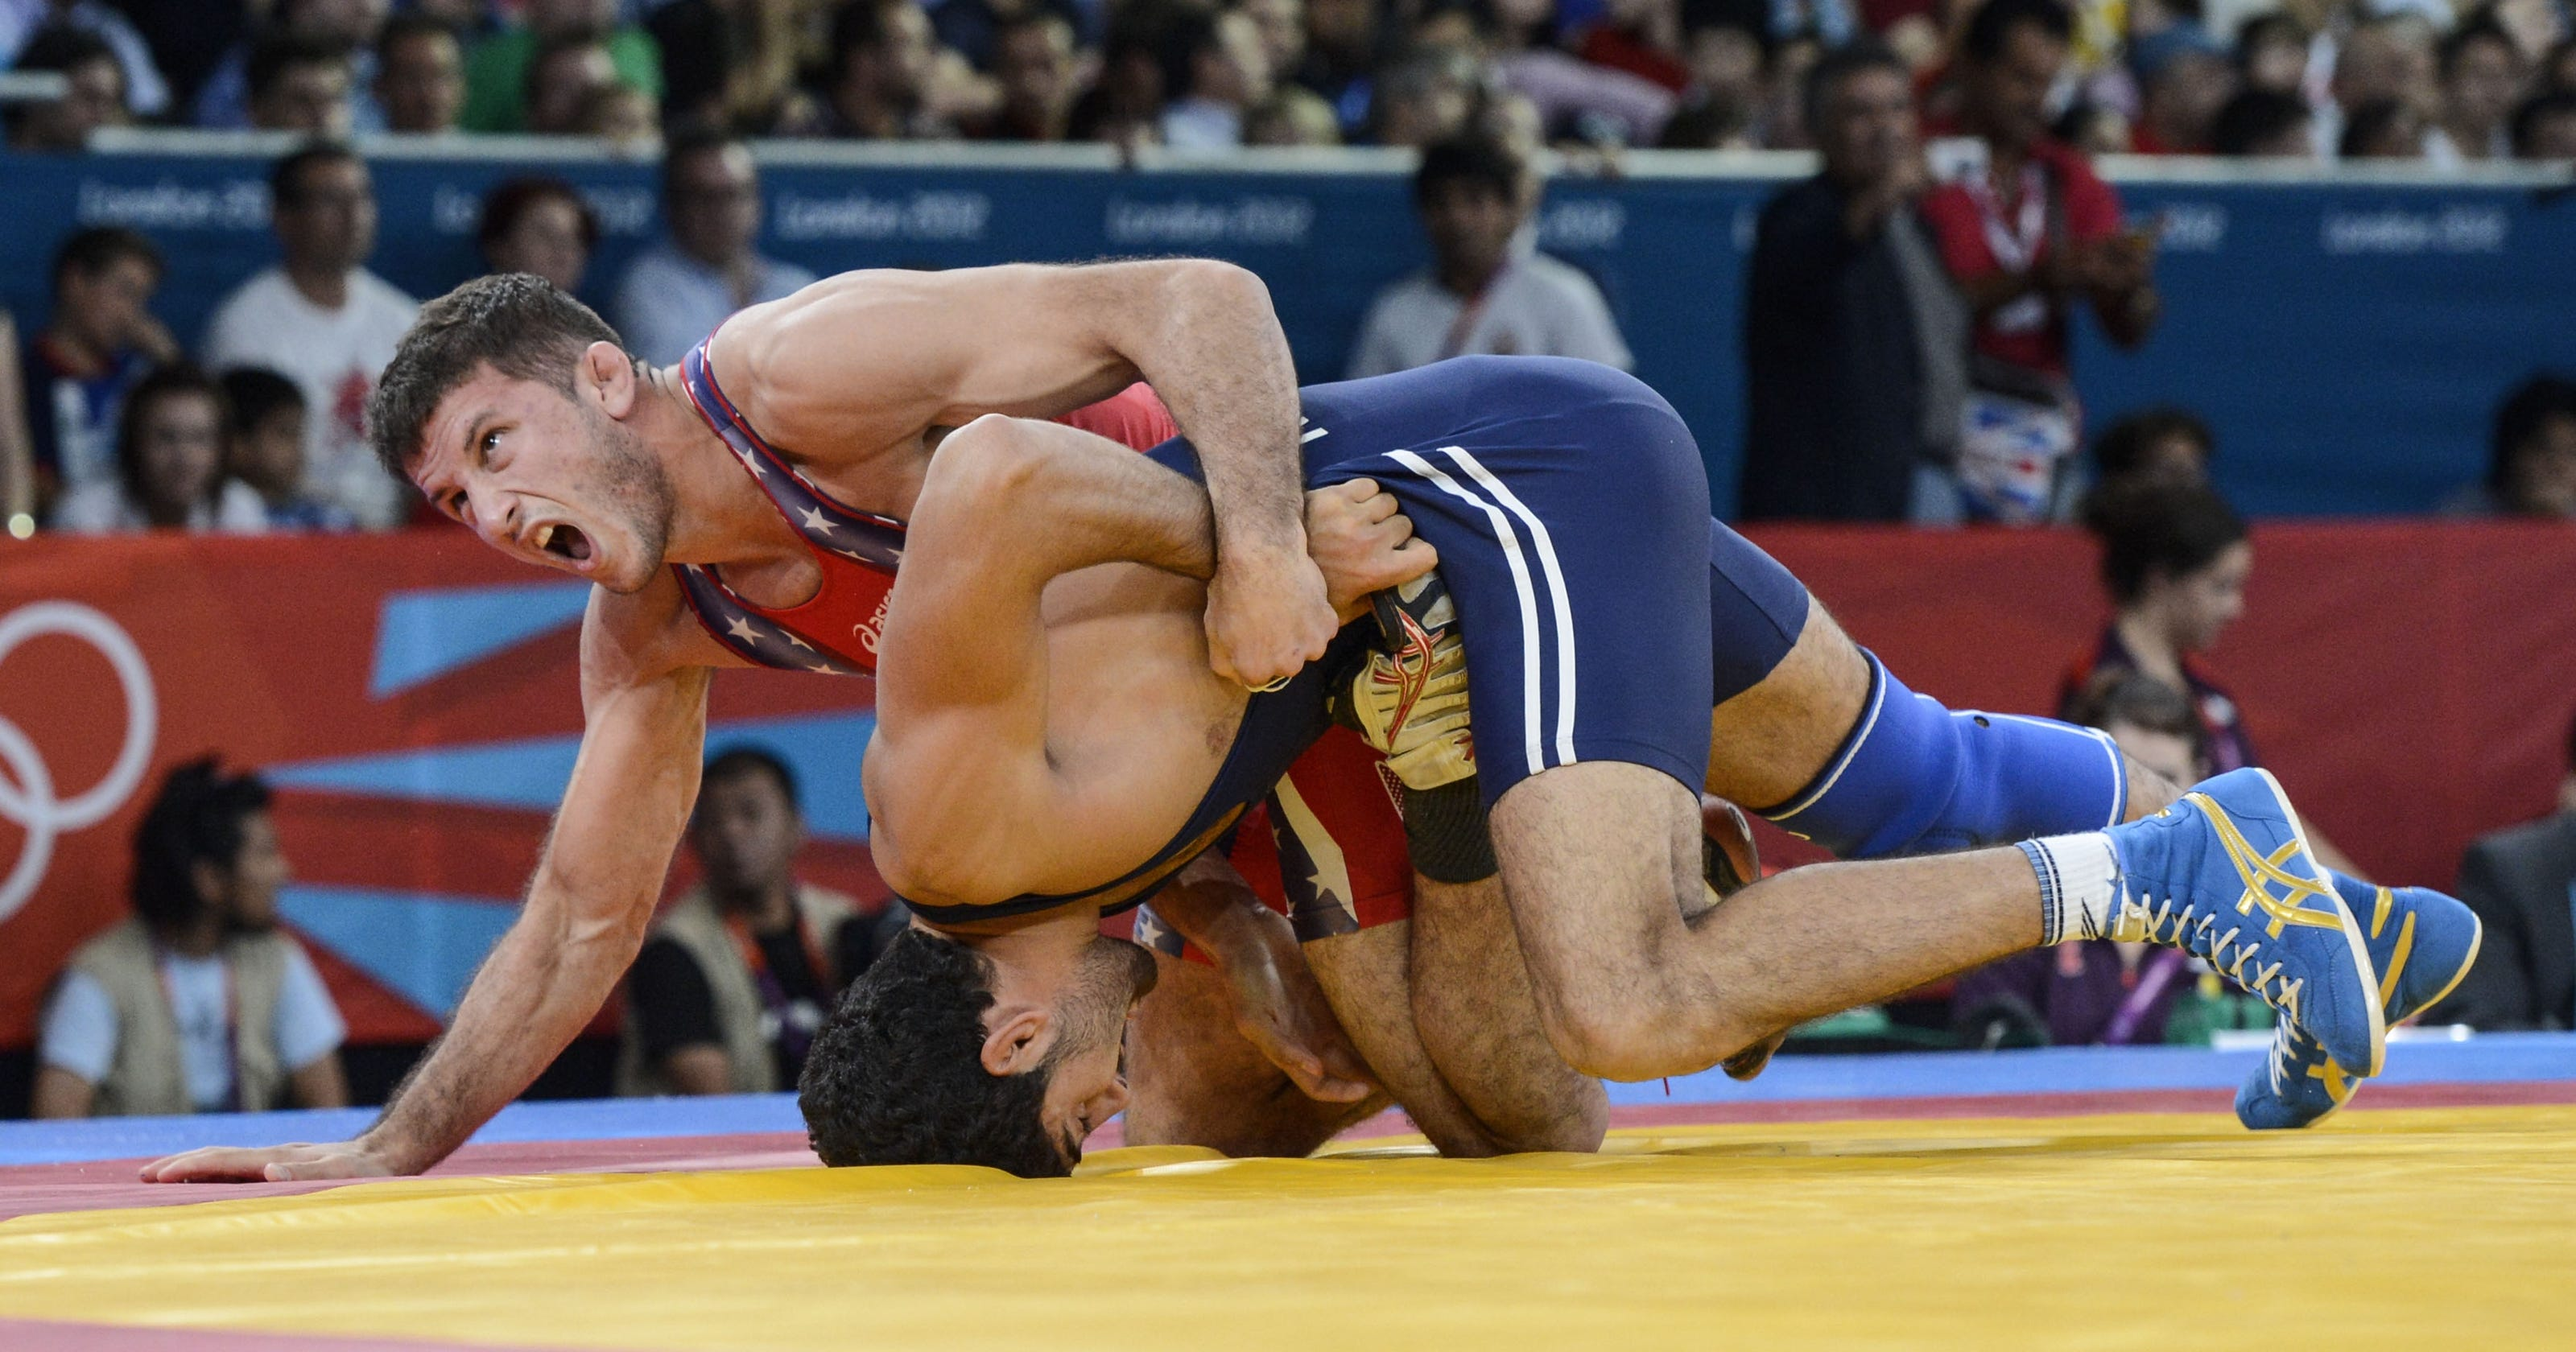 f0780662bcb2bb There s still time to save Olympic wrestling  Column